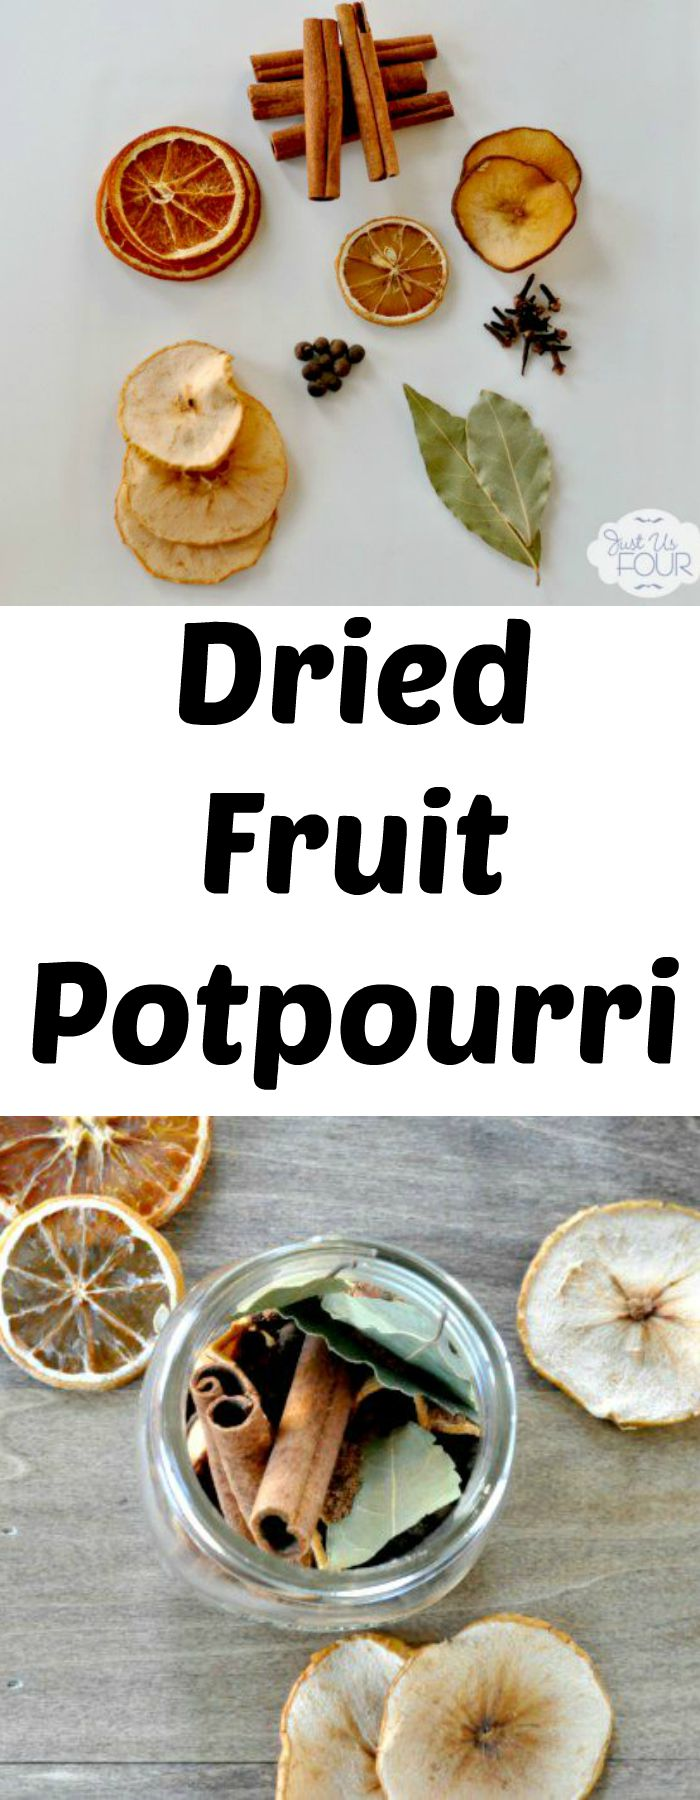 Dried fruit potpourri makes the perfect homemade gift and lasts a long time too.